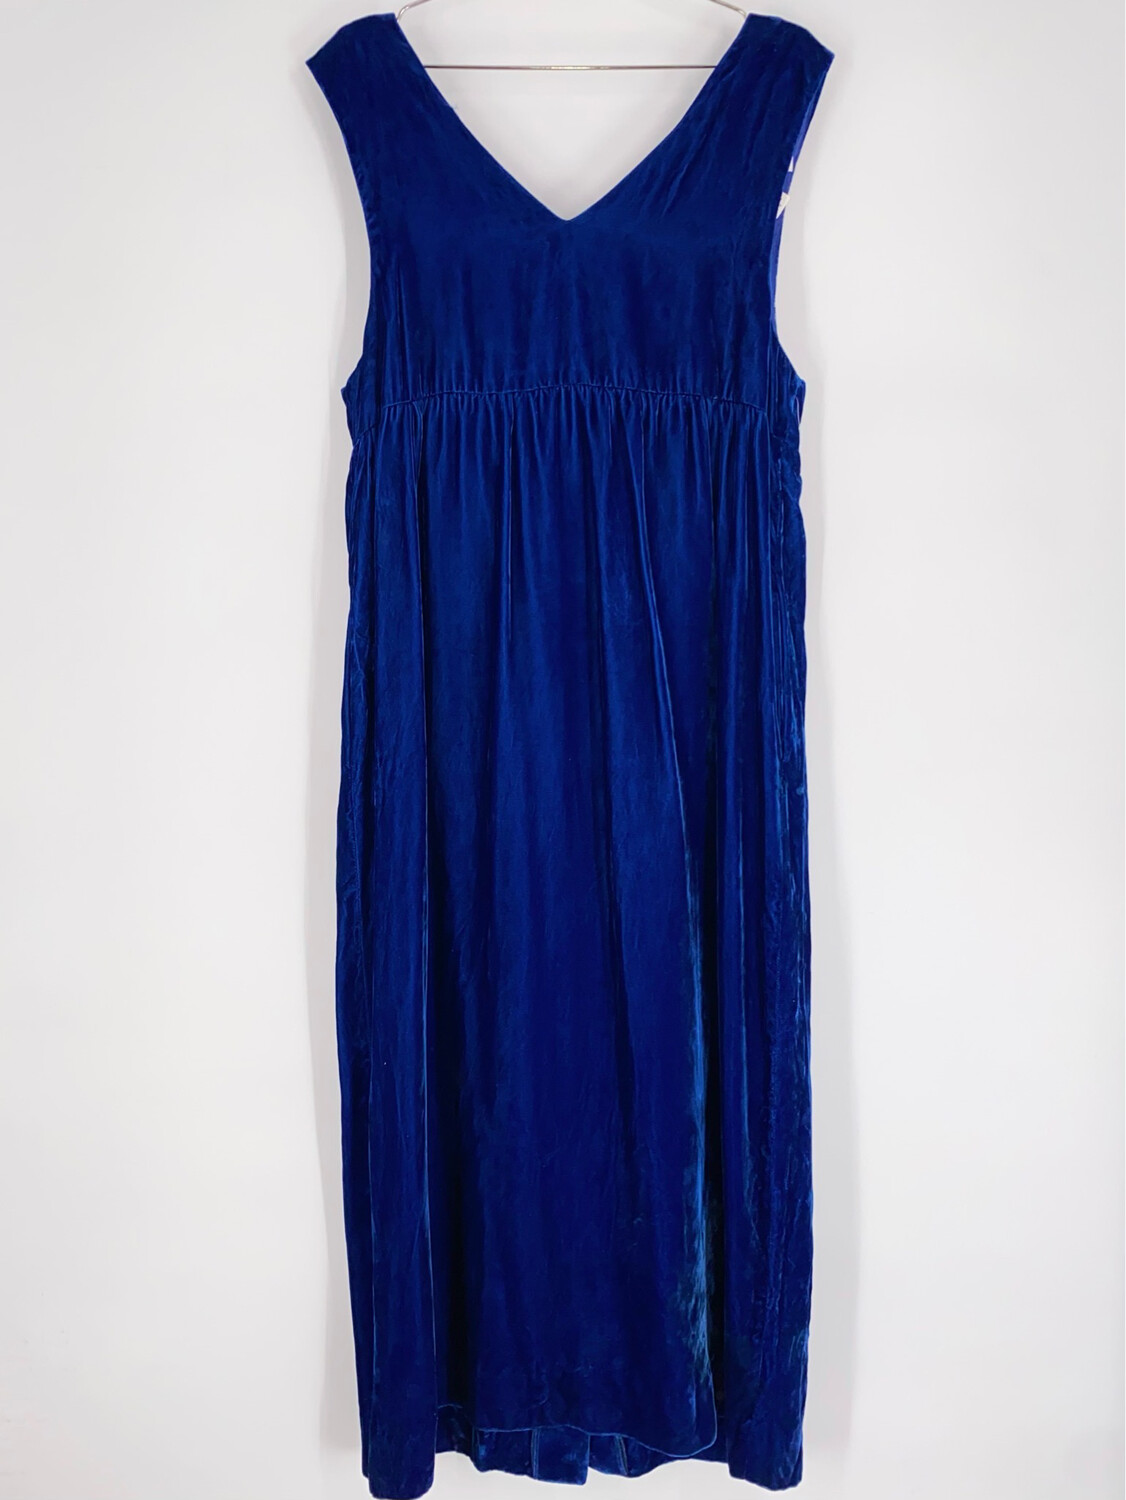 Lord And Taylor Blue Crushes Velvet Babydoll Dress Size L